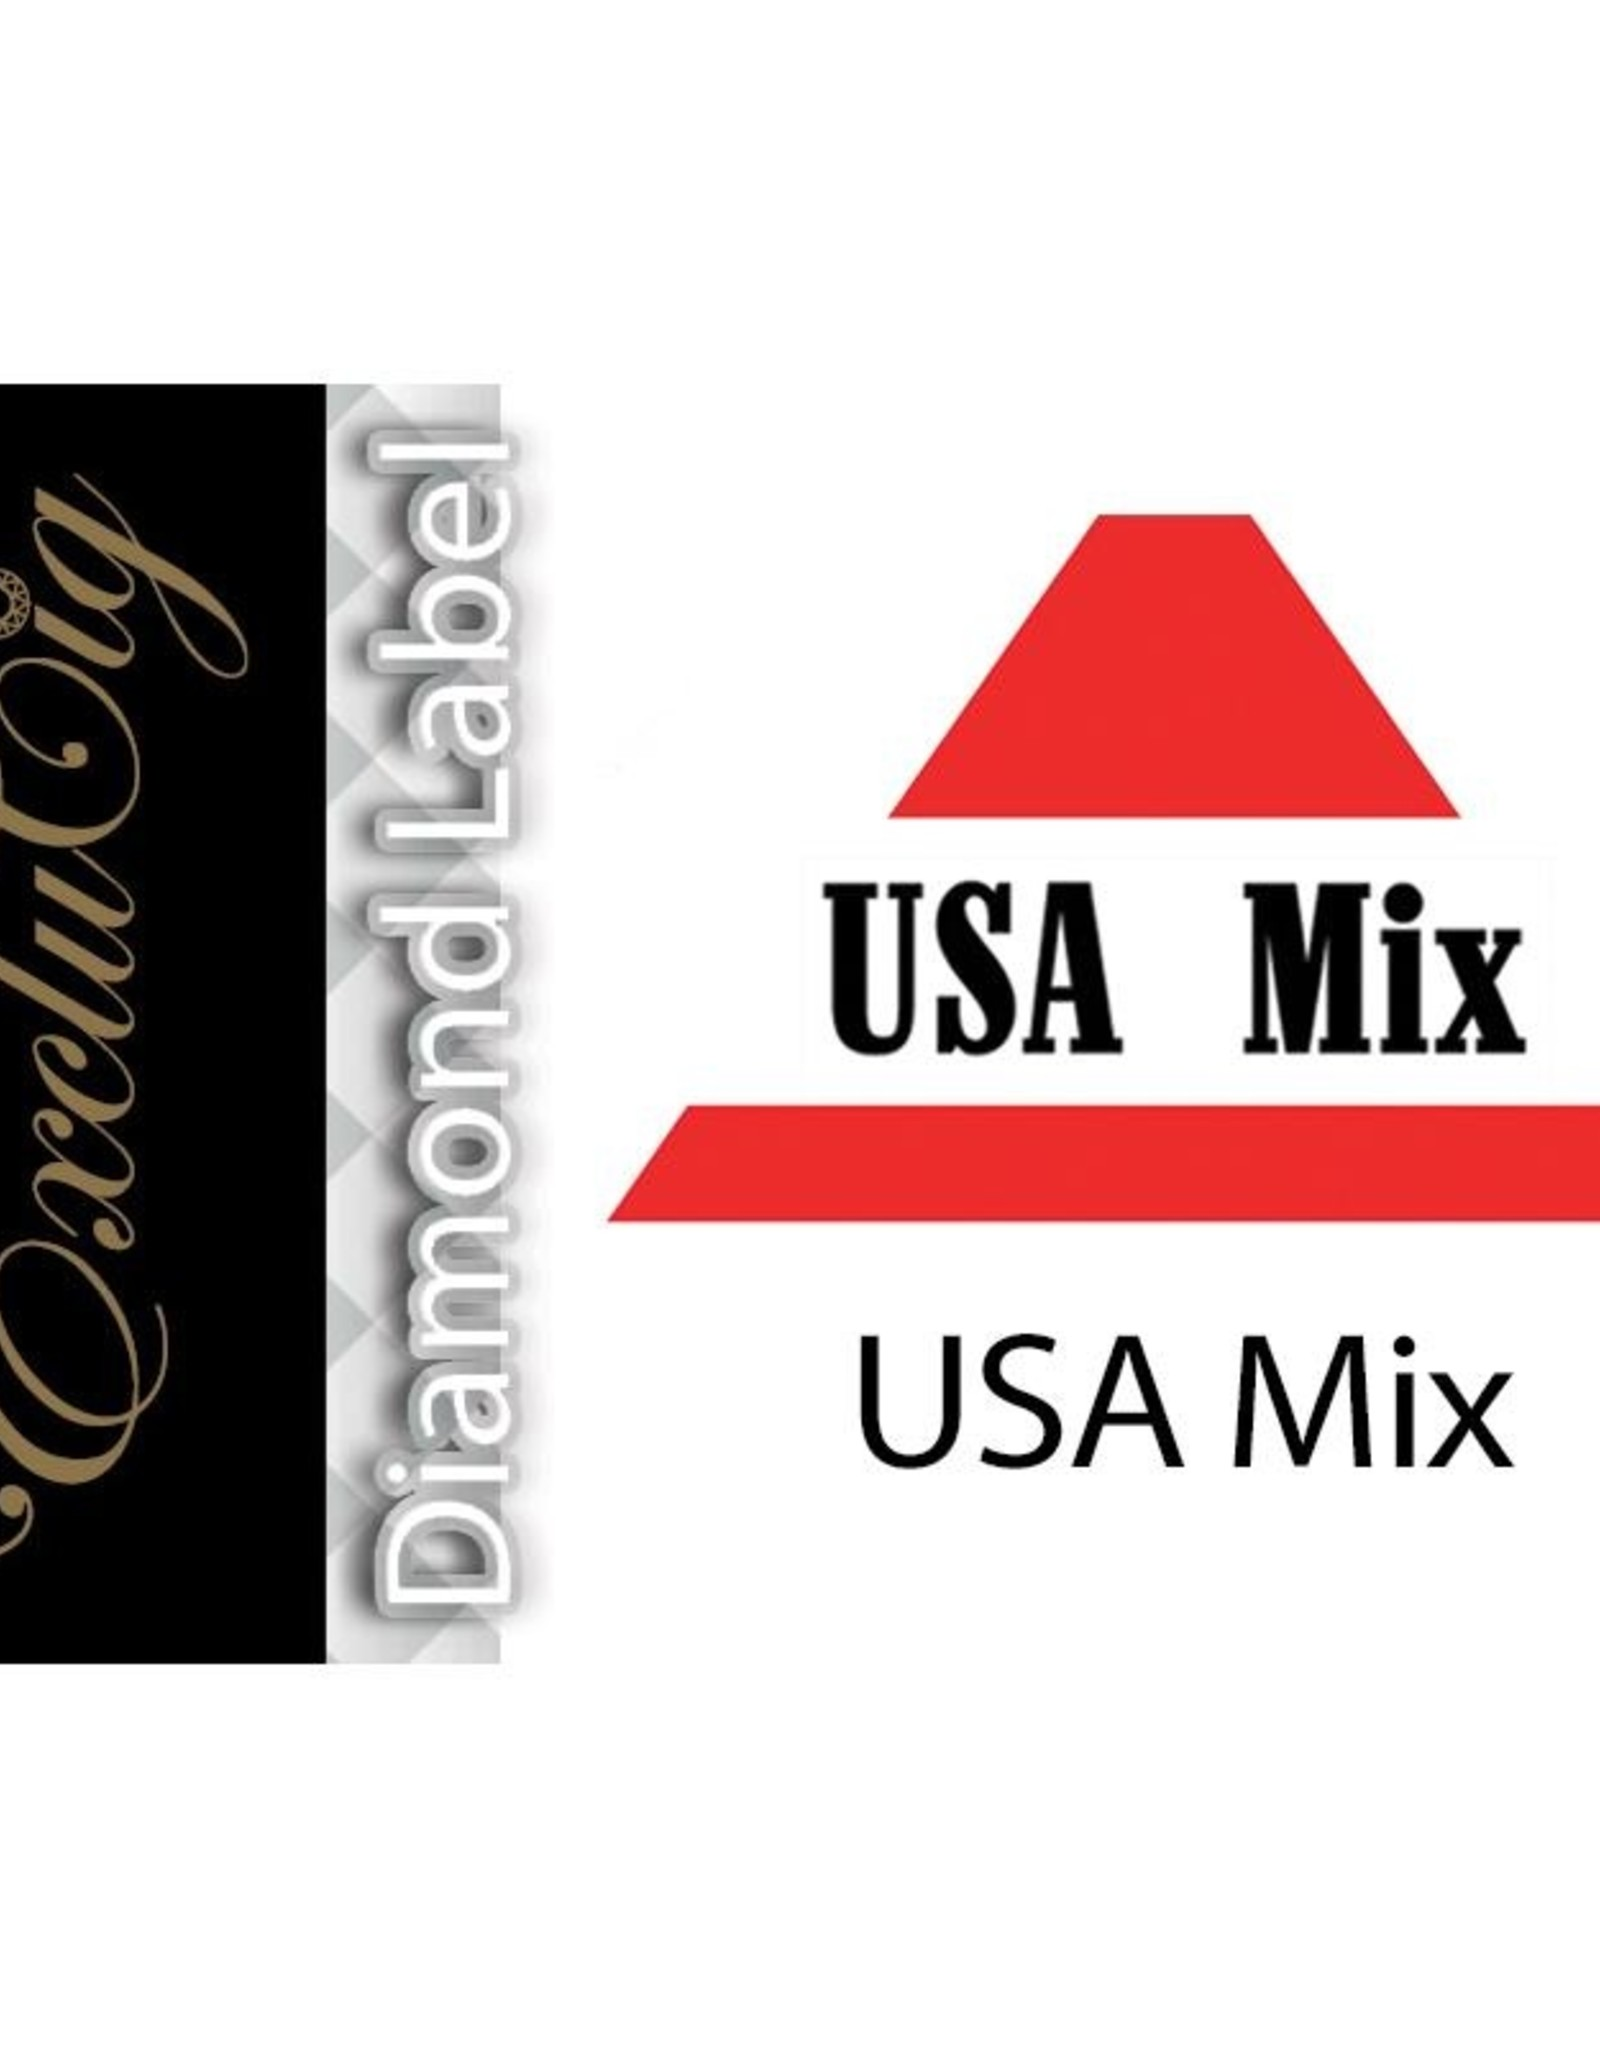 Exclucig Exclucig Diamond Label E-liquid USA Mix 12 mg Nicotine